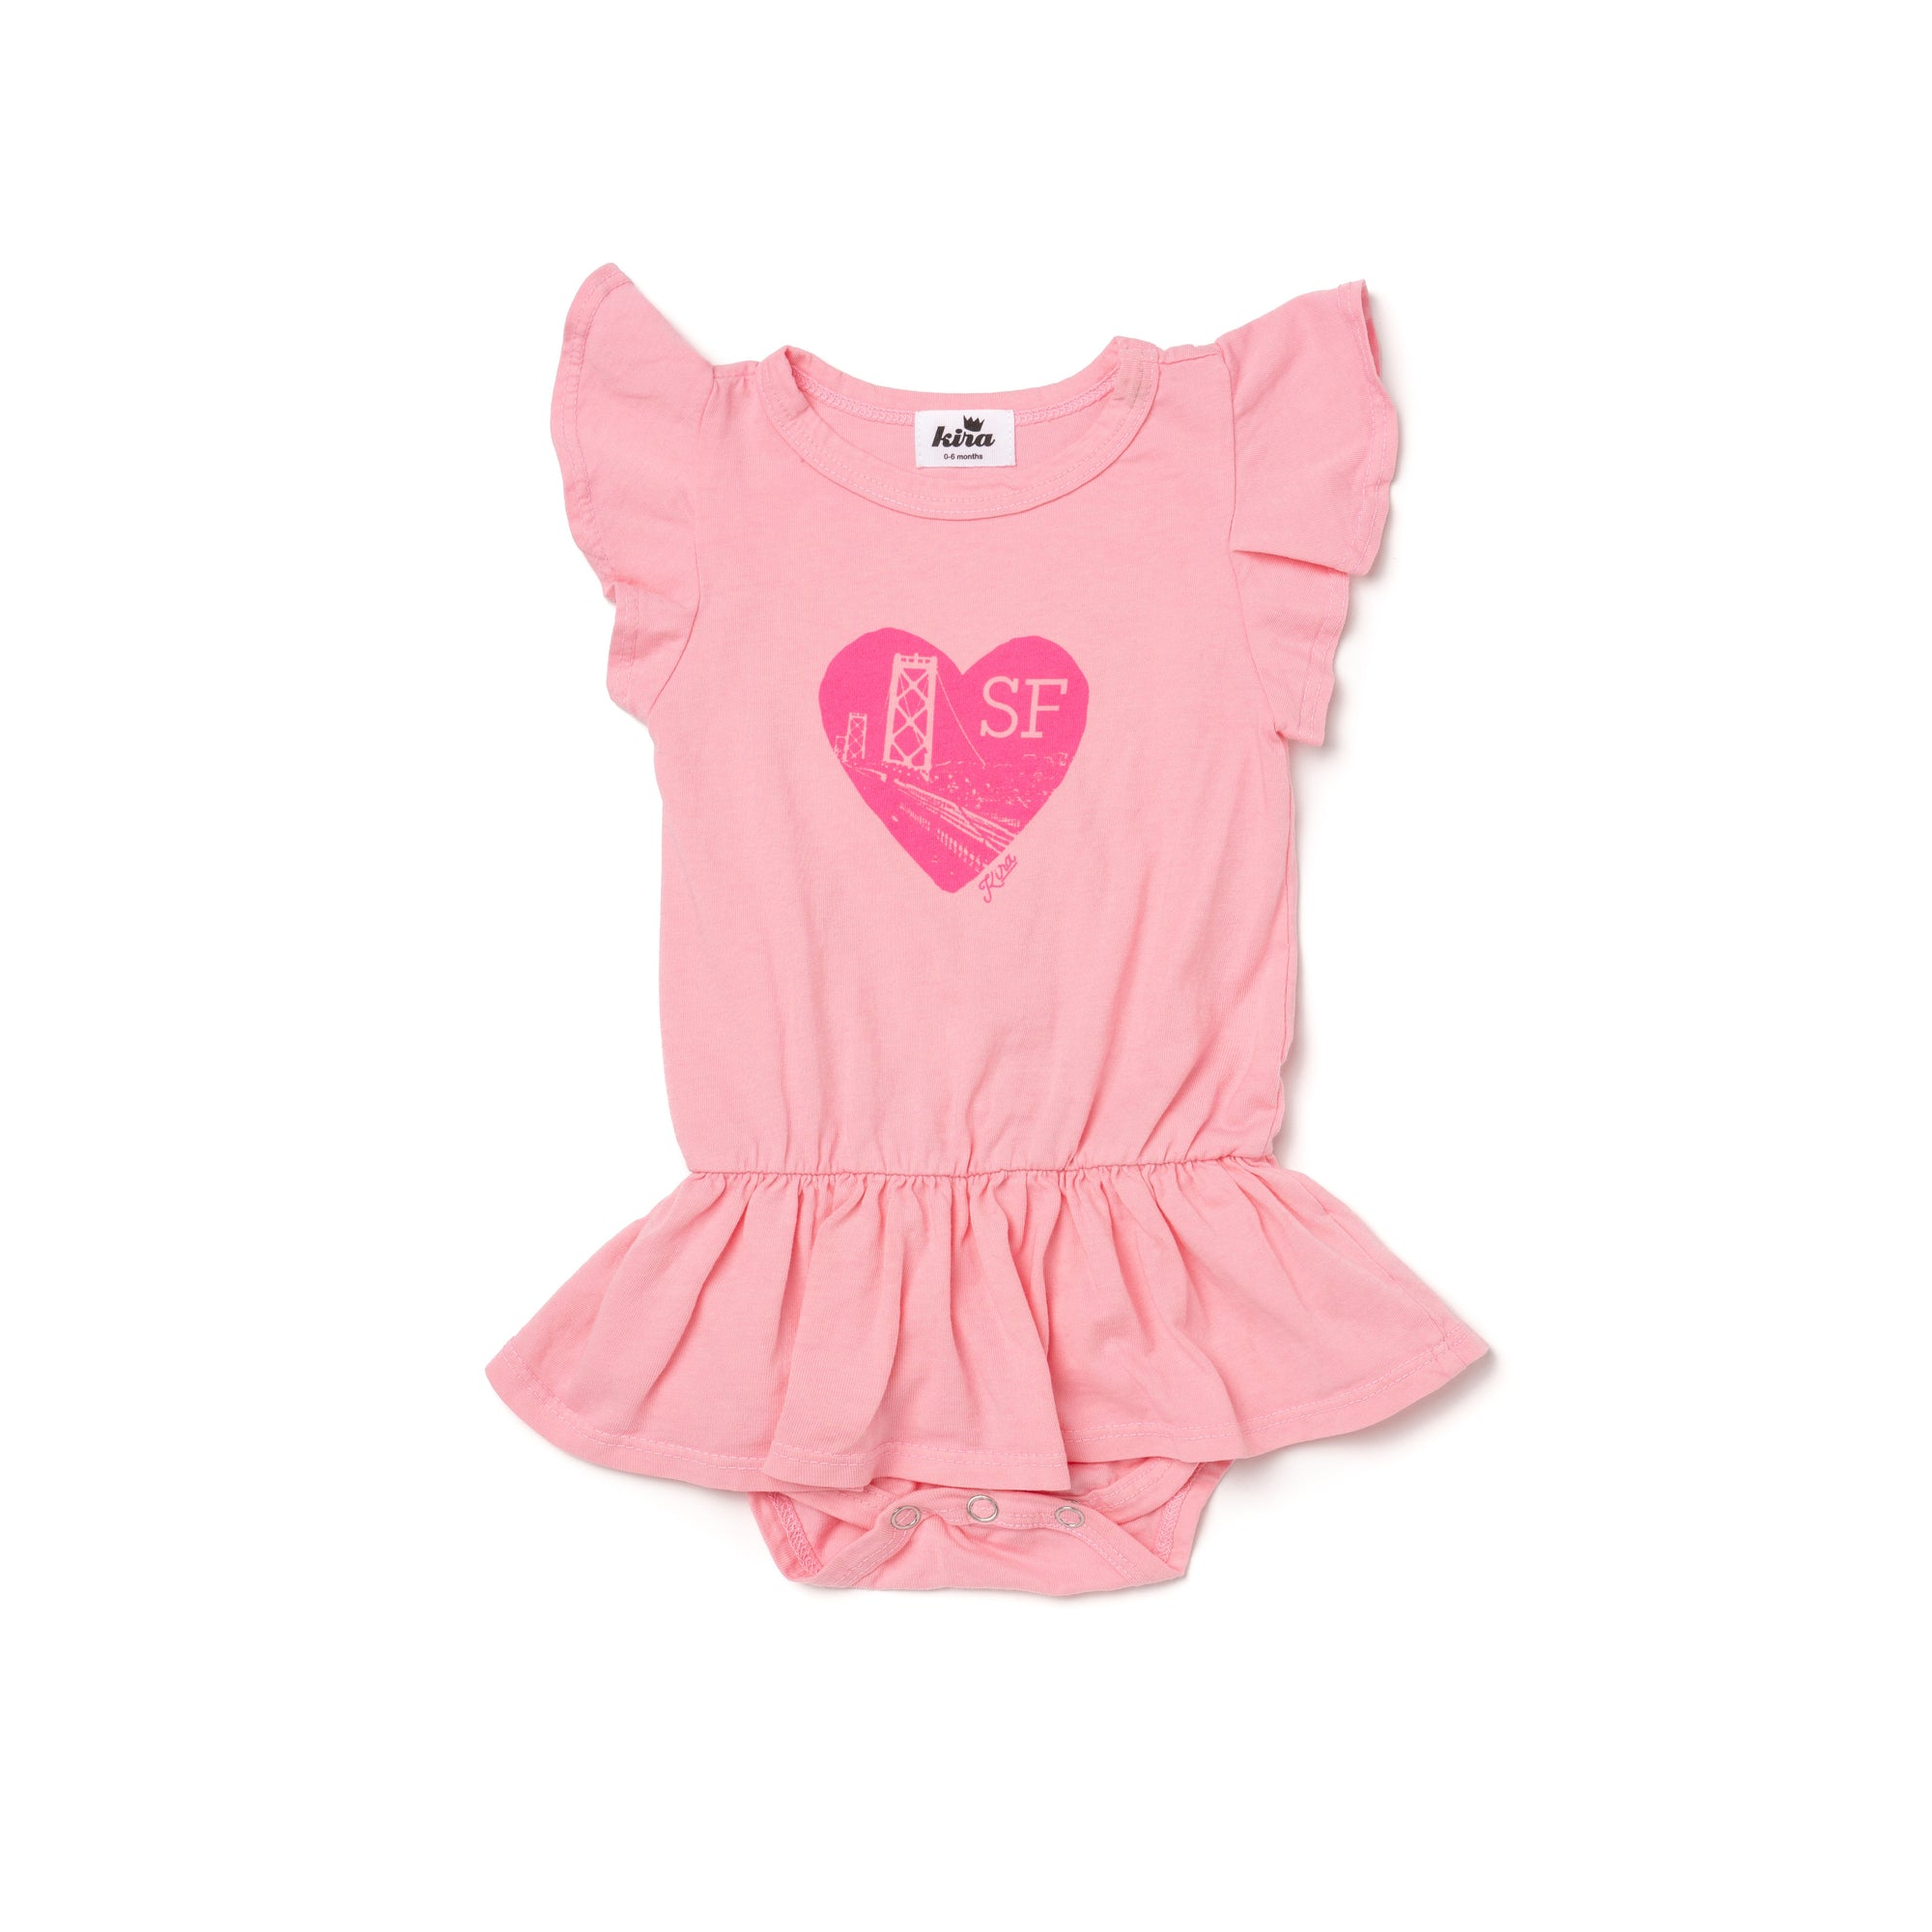 SF Graphic Dress Onesie, Sweetheart